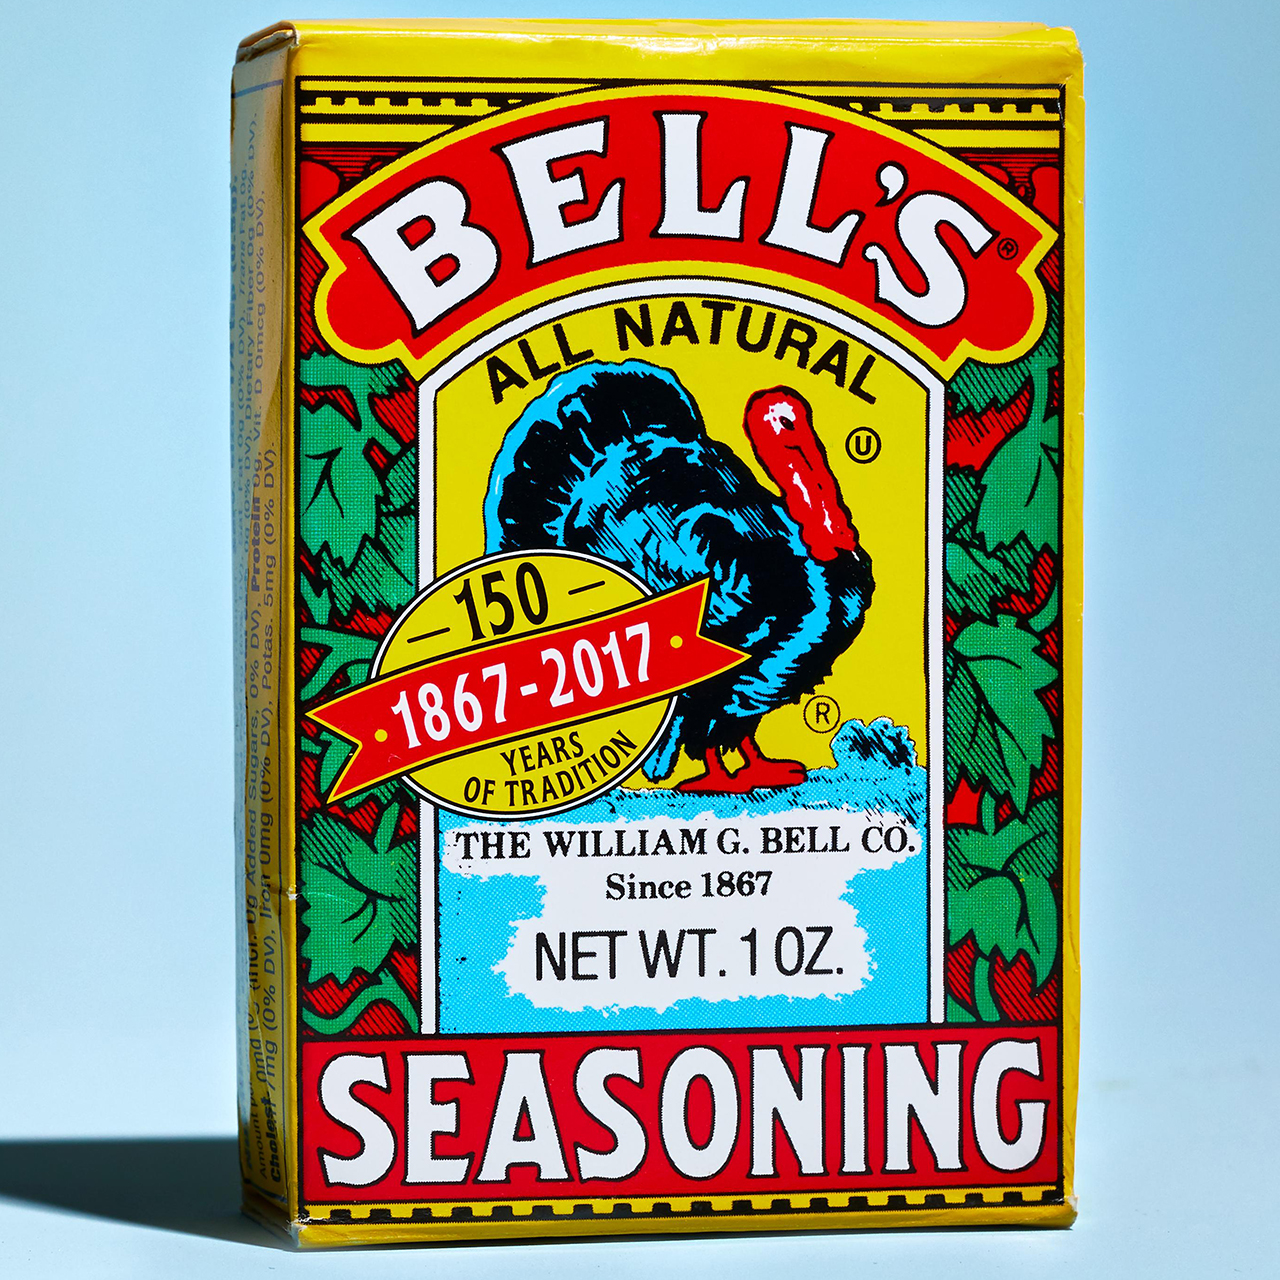 Bell's Seasoning container on blue background